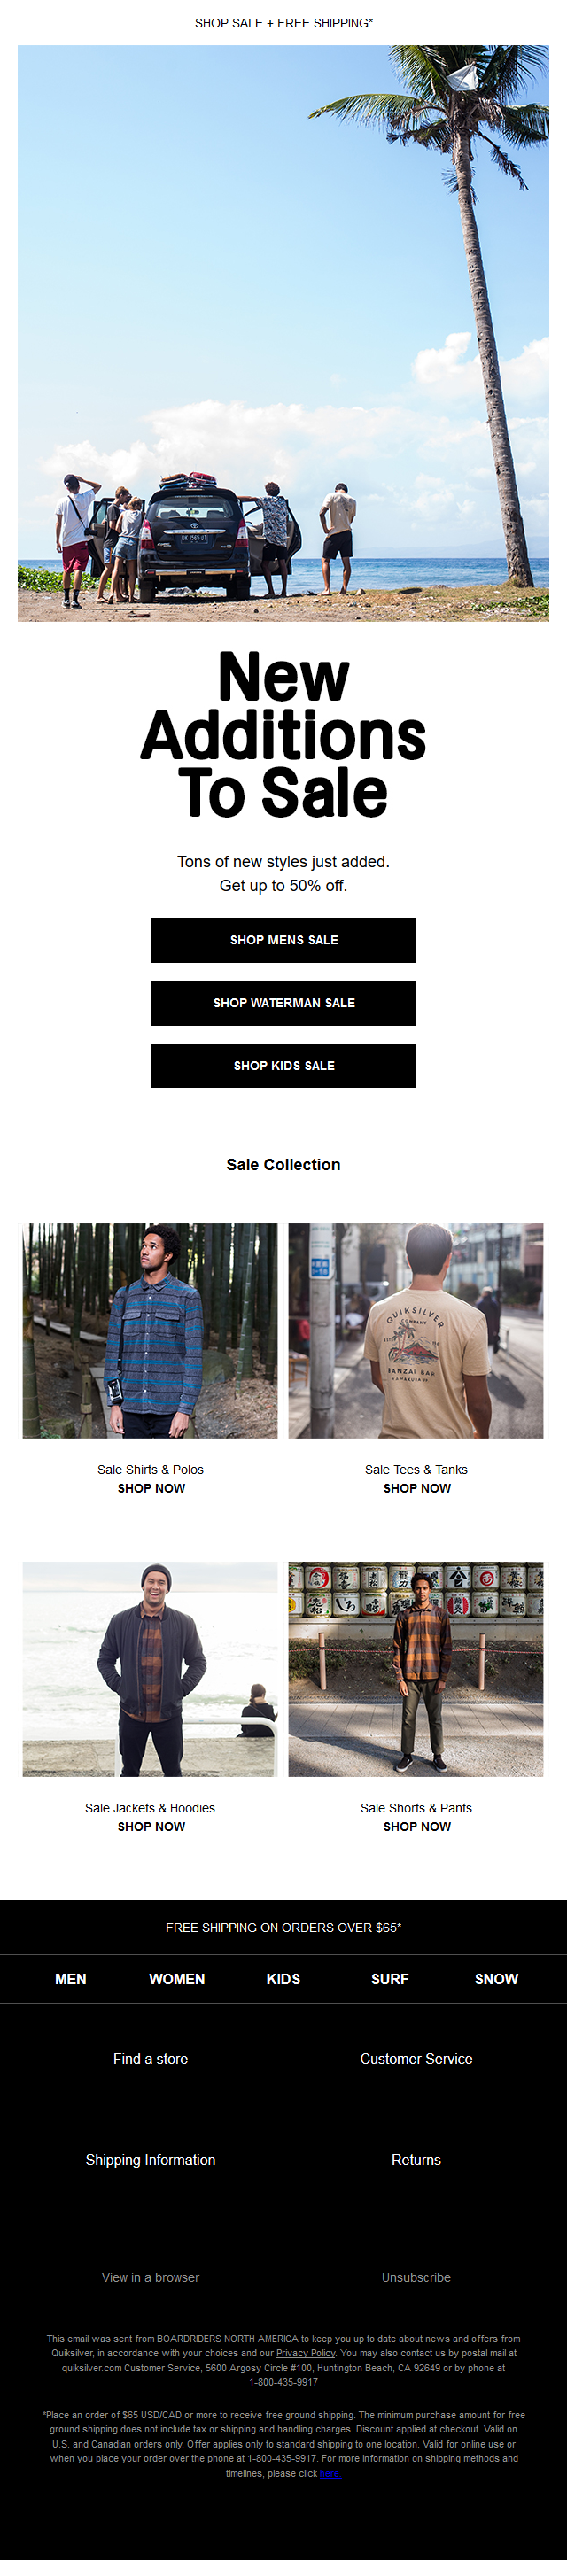 New Additions To Sale: Get Up To 50% Off